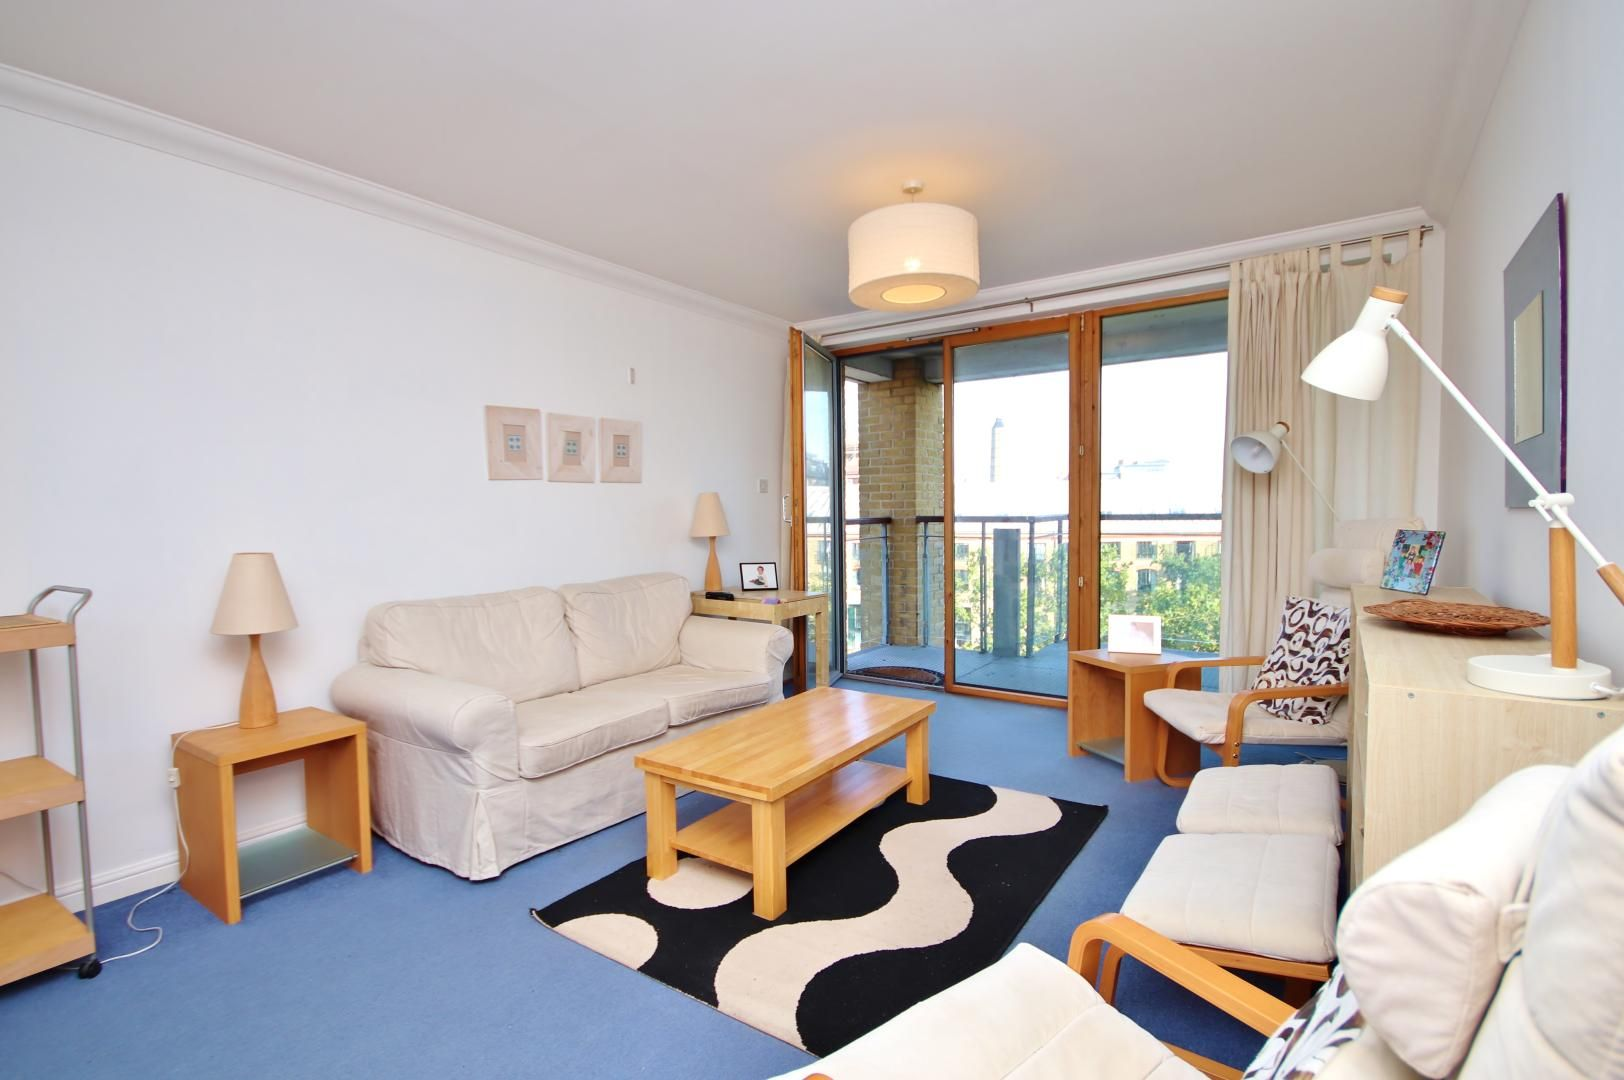 2 bed flat to rent in Amundsen Court, E14